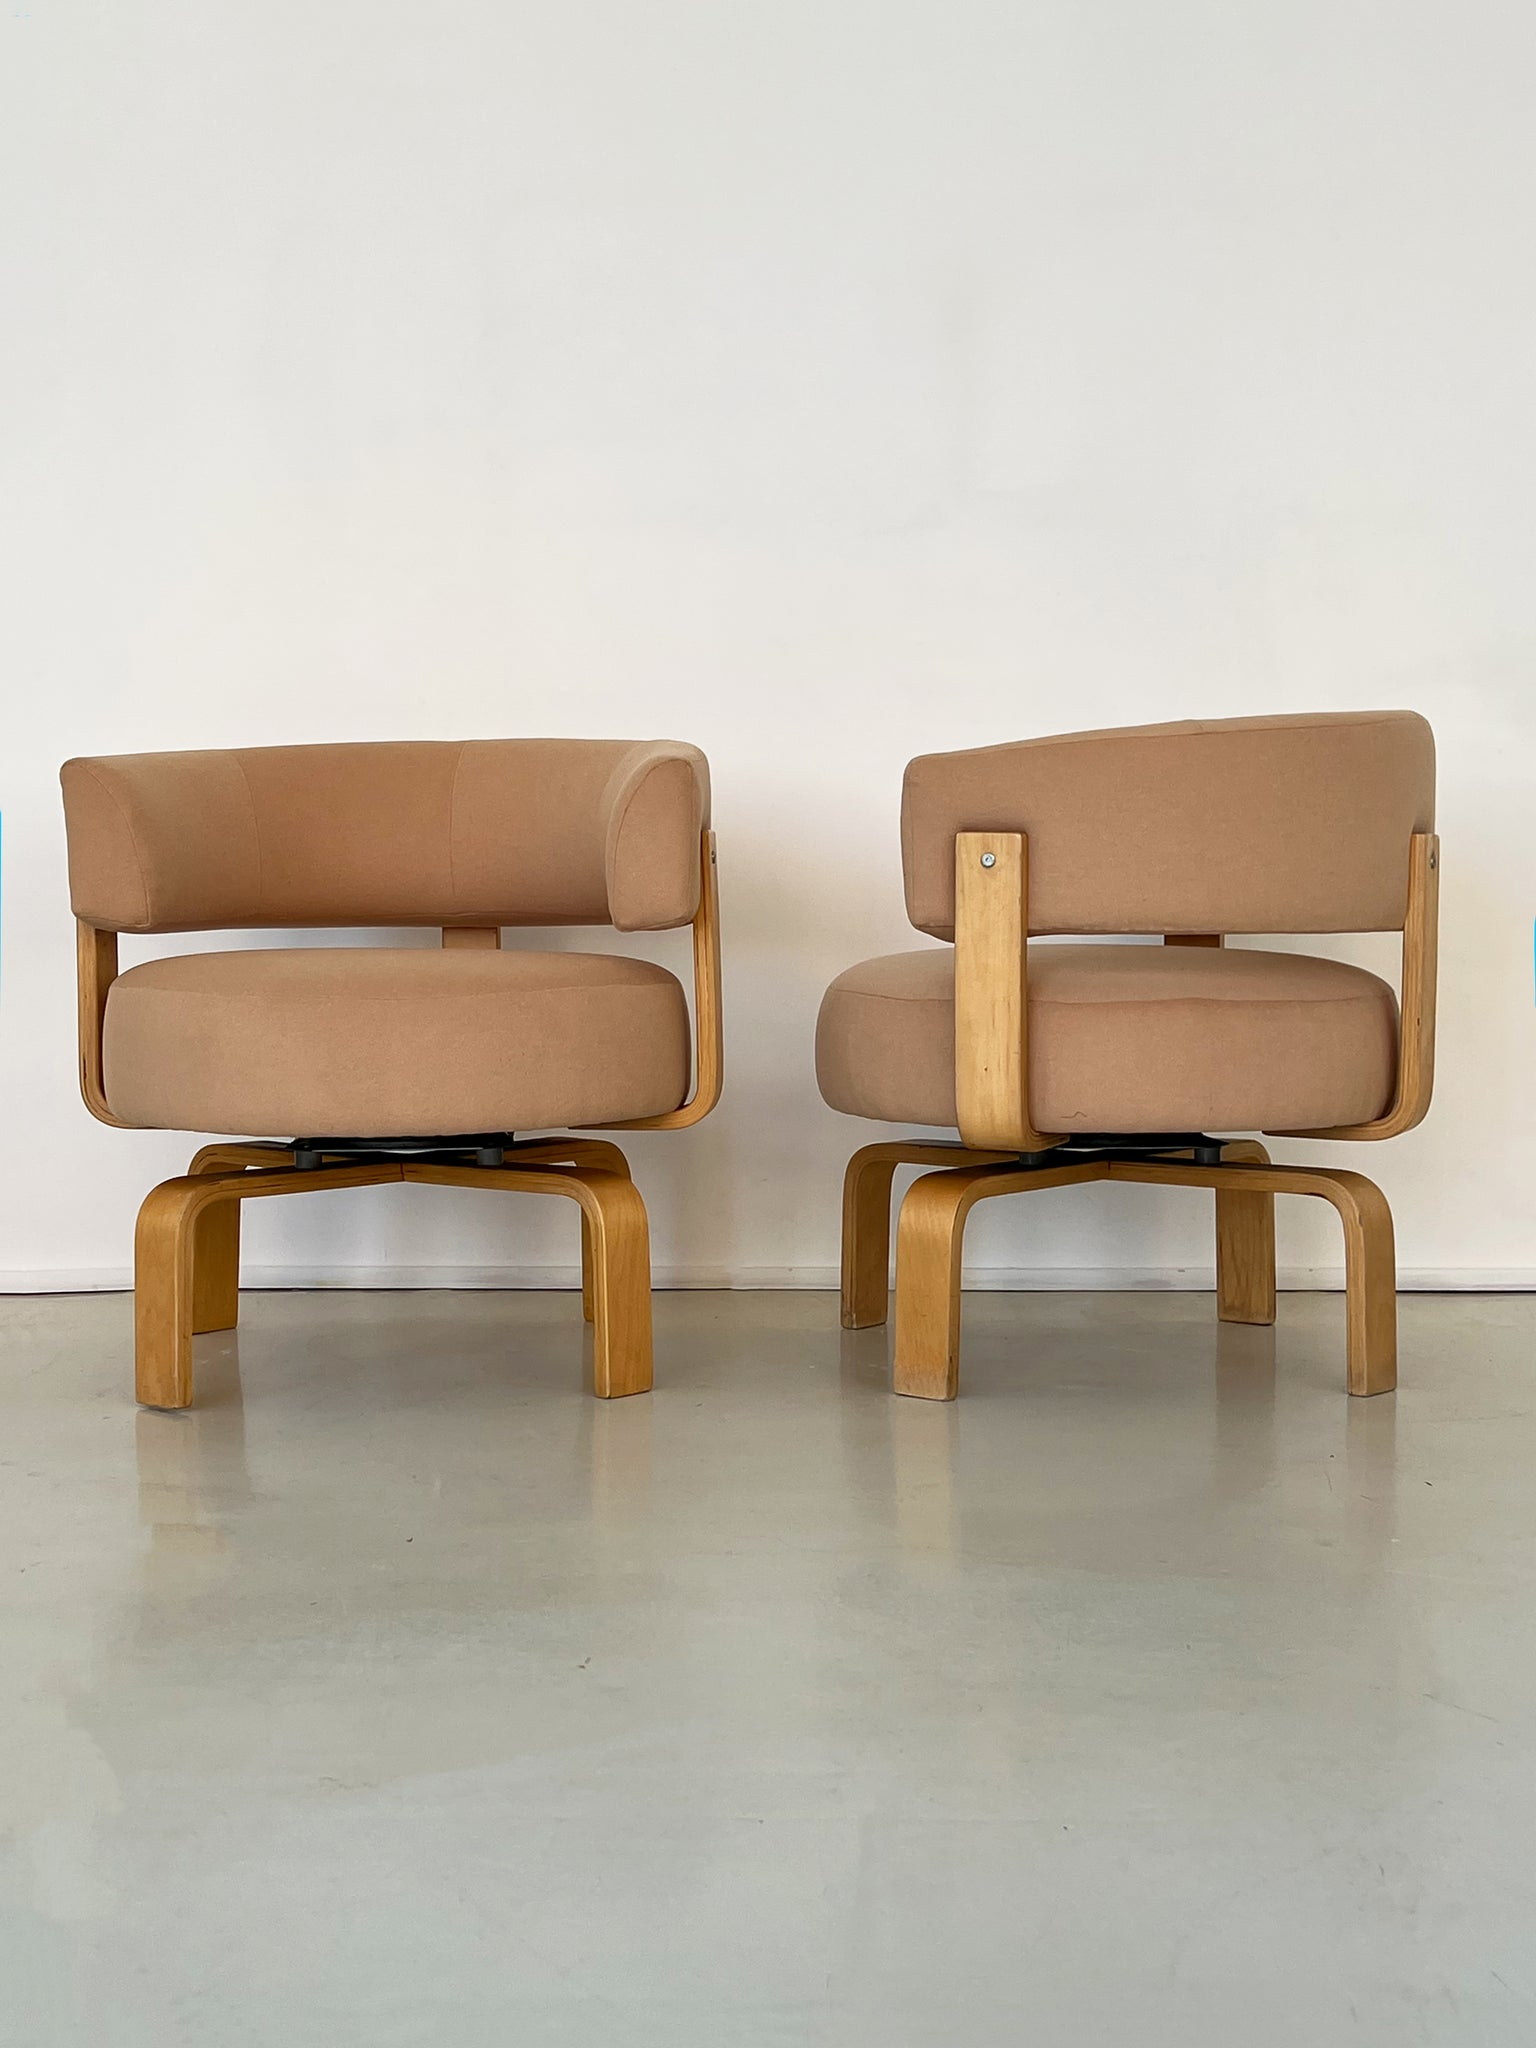 1980s IKEA Italy Bent Metal Primary Colored Coat Rack